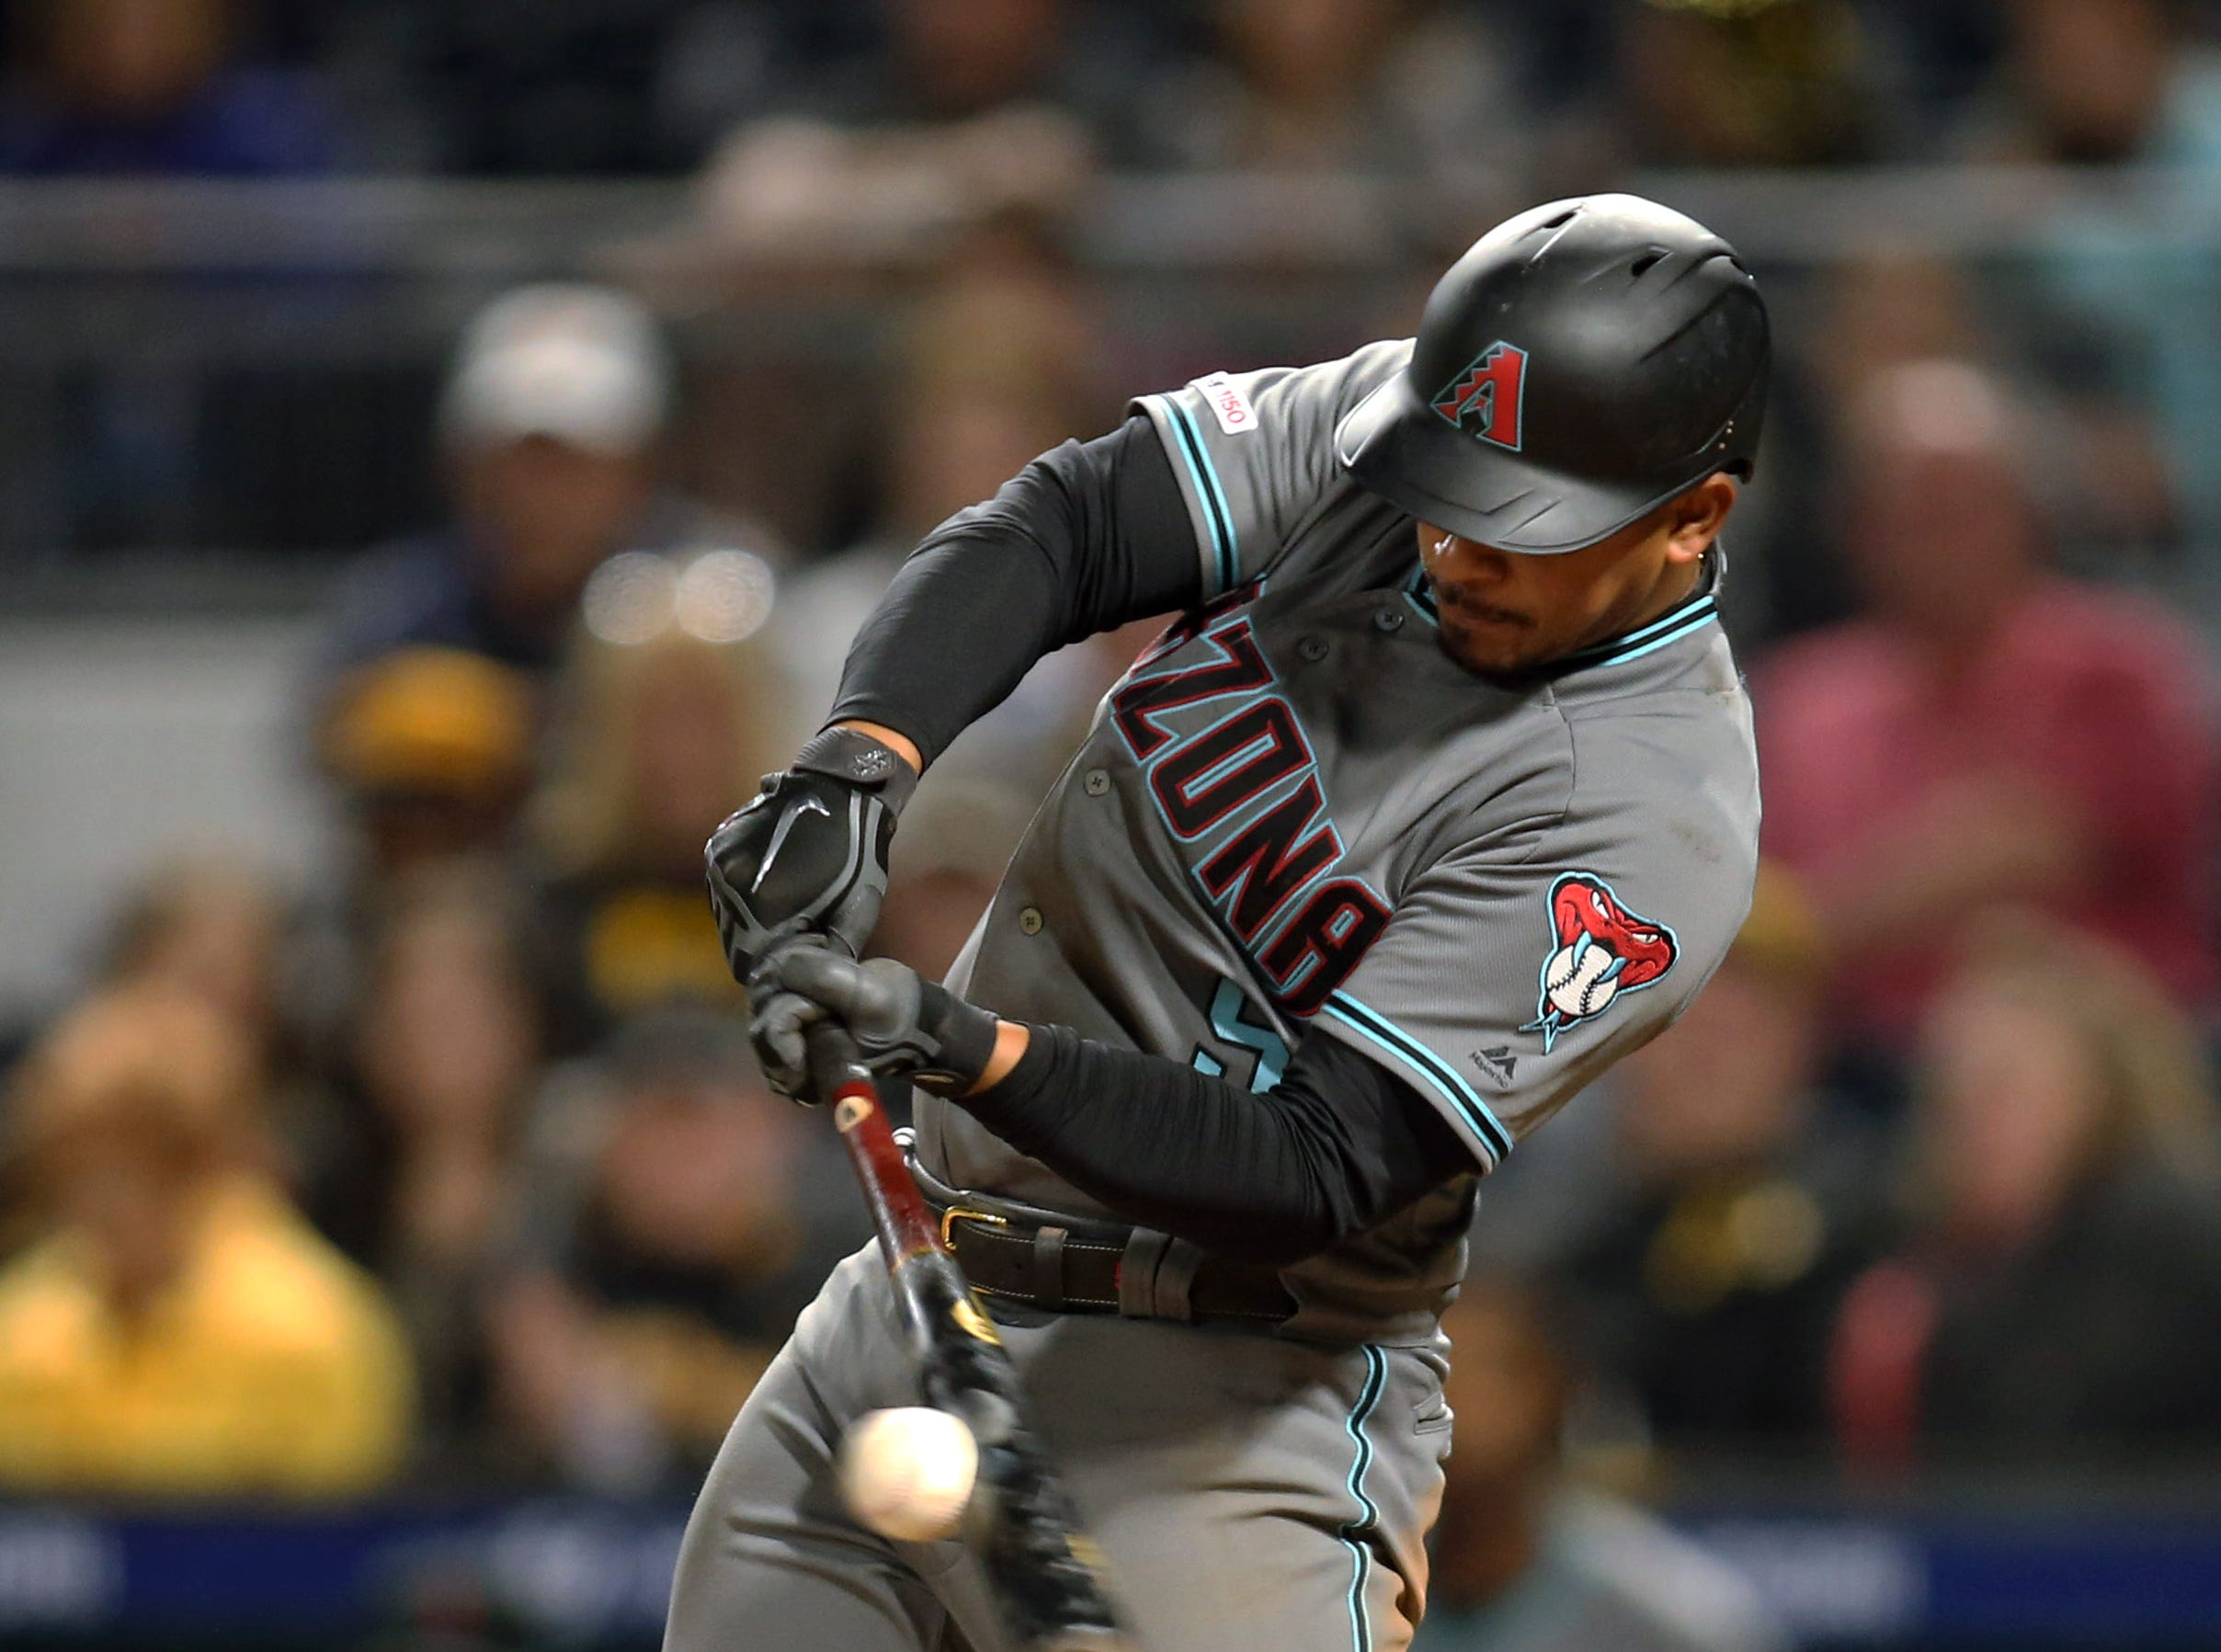 Apr 23, 2019; Pittsburgh, PA, USA; Arizona Diamondbacks third baseman Eduardo Escobar (5) singles against the Pittsburgh Pirates during the eighth inning at PNC Park. Mandatory Credit: Charles LeClaire-USA TODAY Sports